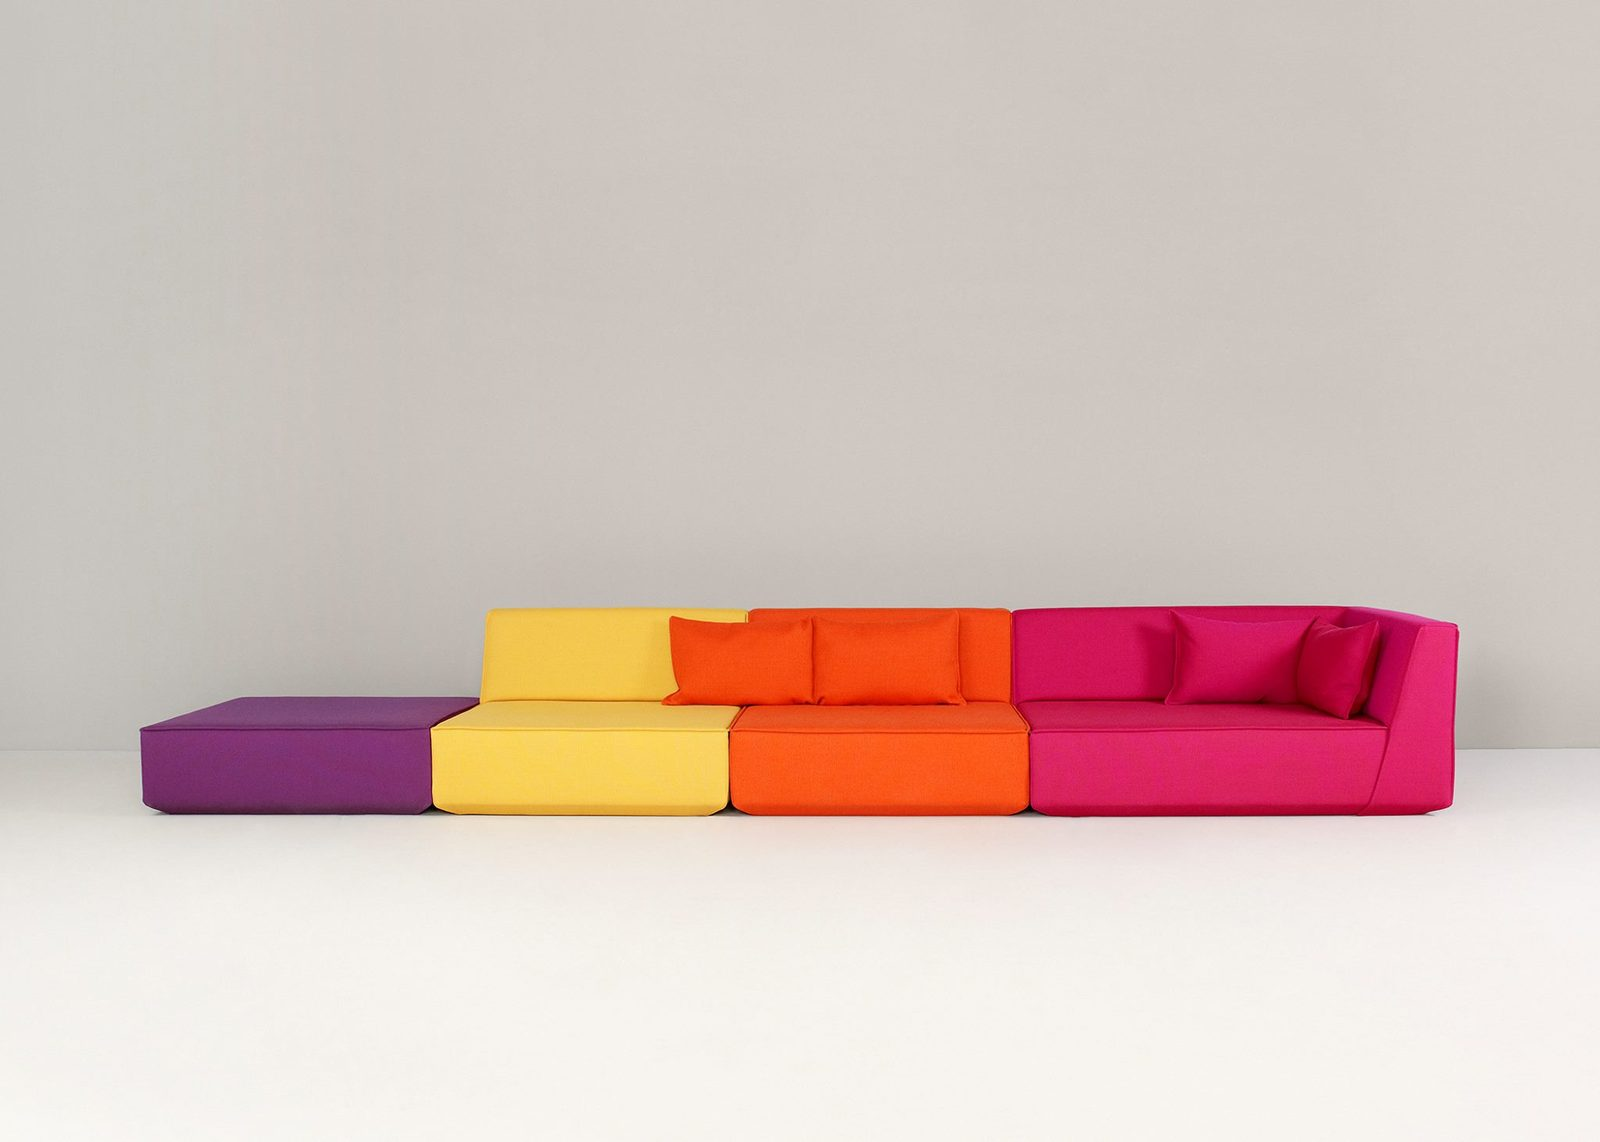 Configurable Sofa Sectionals Cubit By Mymito